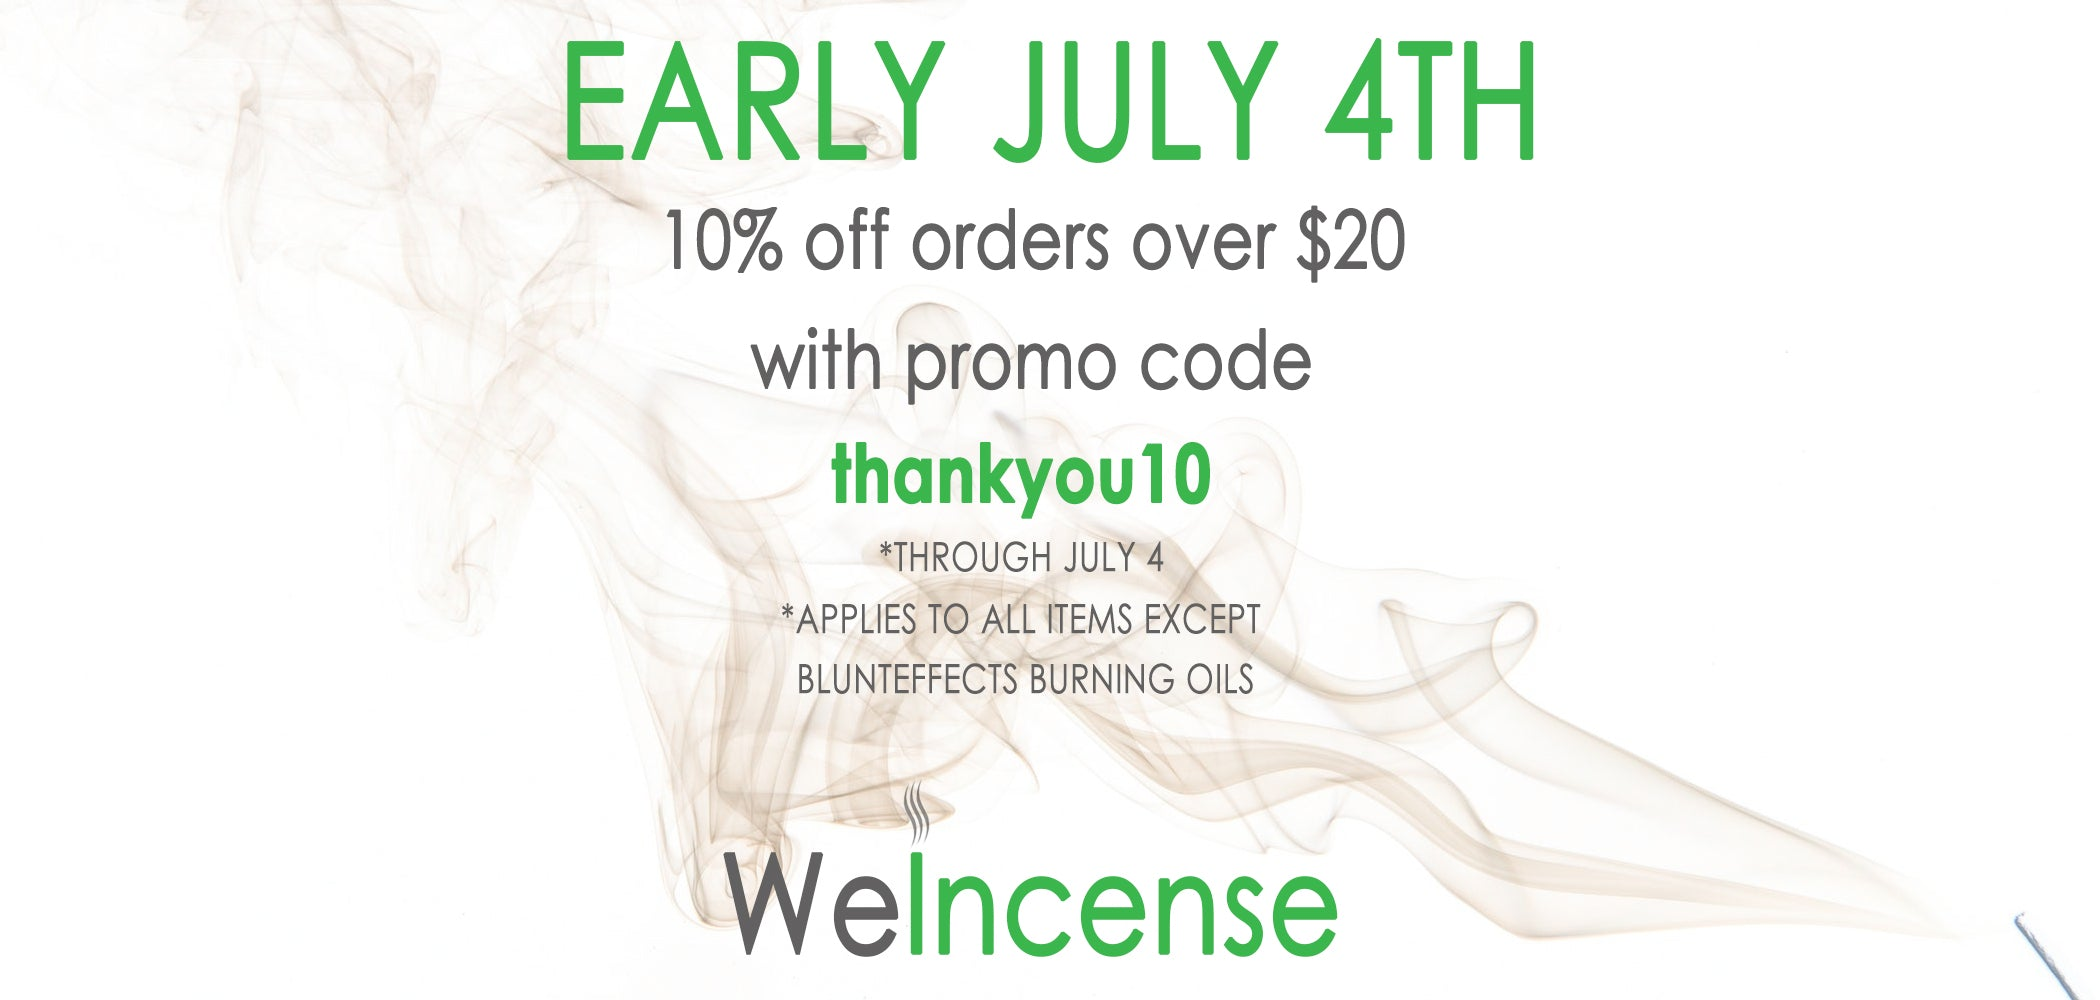 EARLY JULY 4TH SALE - 10% OFF ORDERS OVER $20